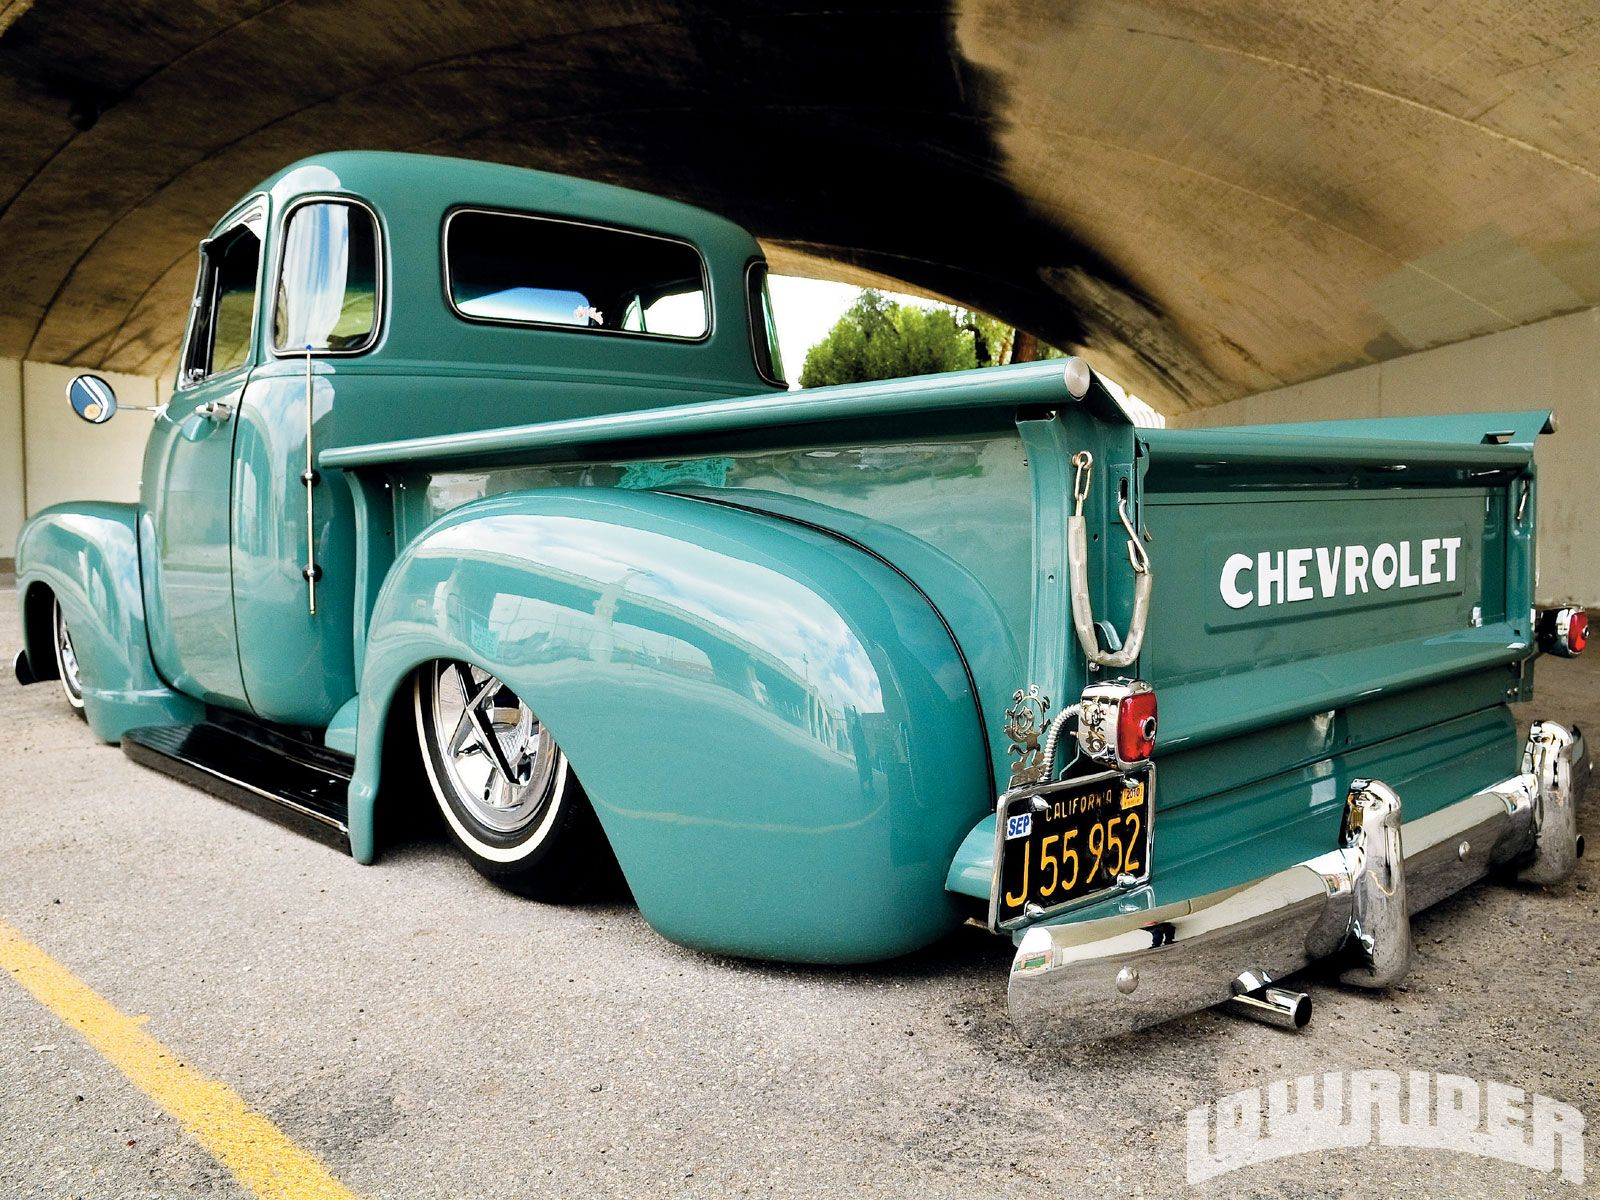 1952 Chevy Truck Lowered Pickup Lowride Hd Wallpaper Chevy Trucks Lowrider Trucks 1952 Chevy Truck